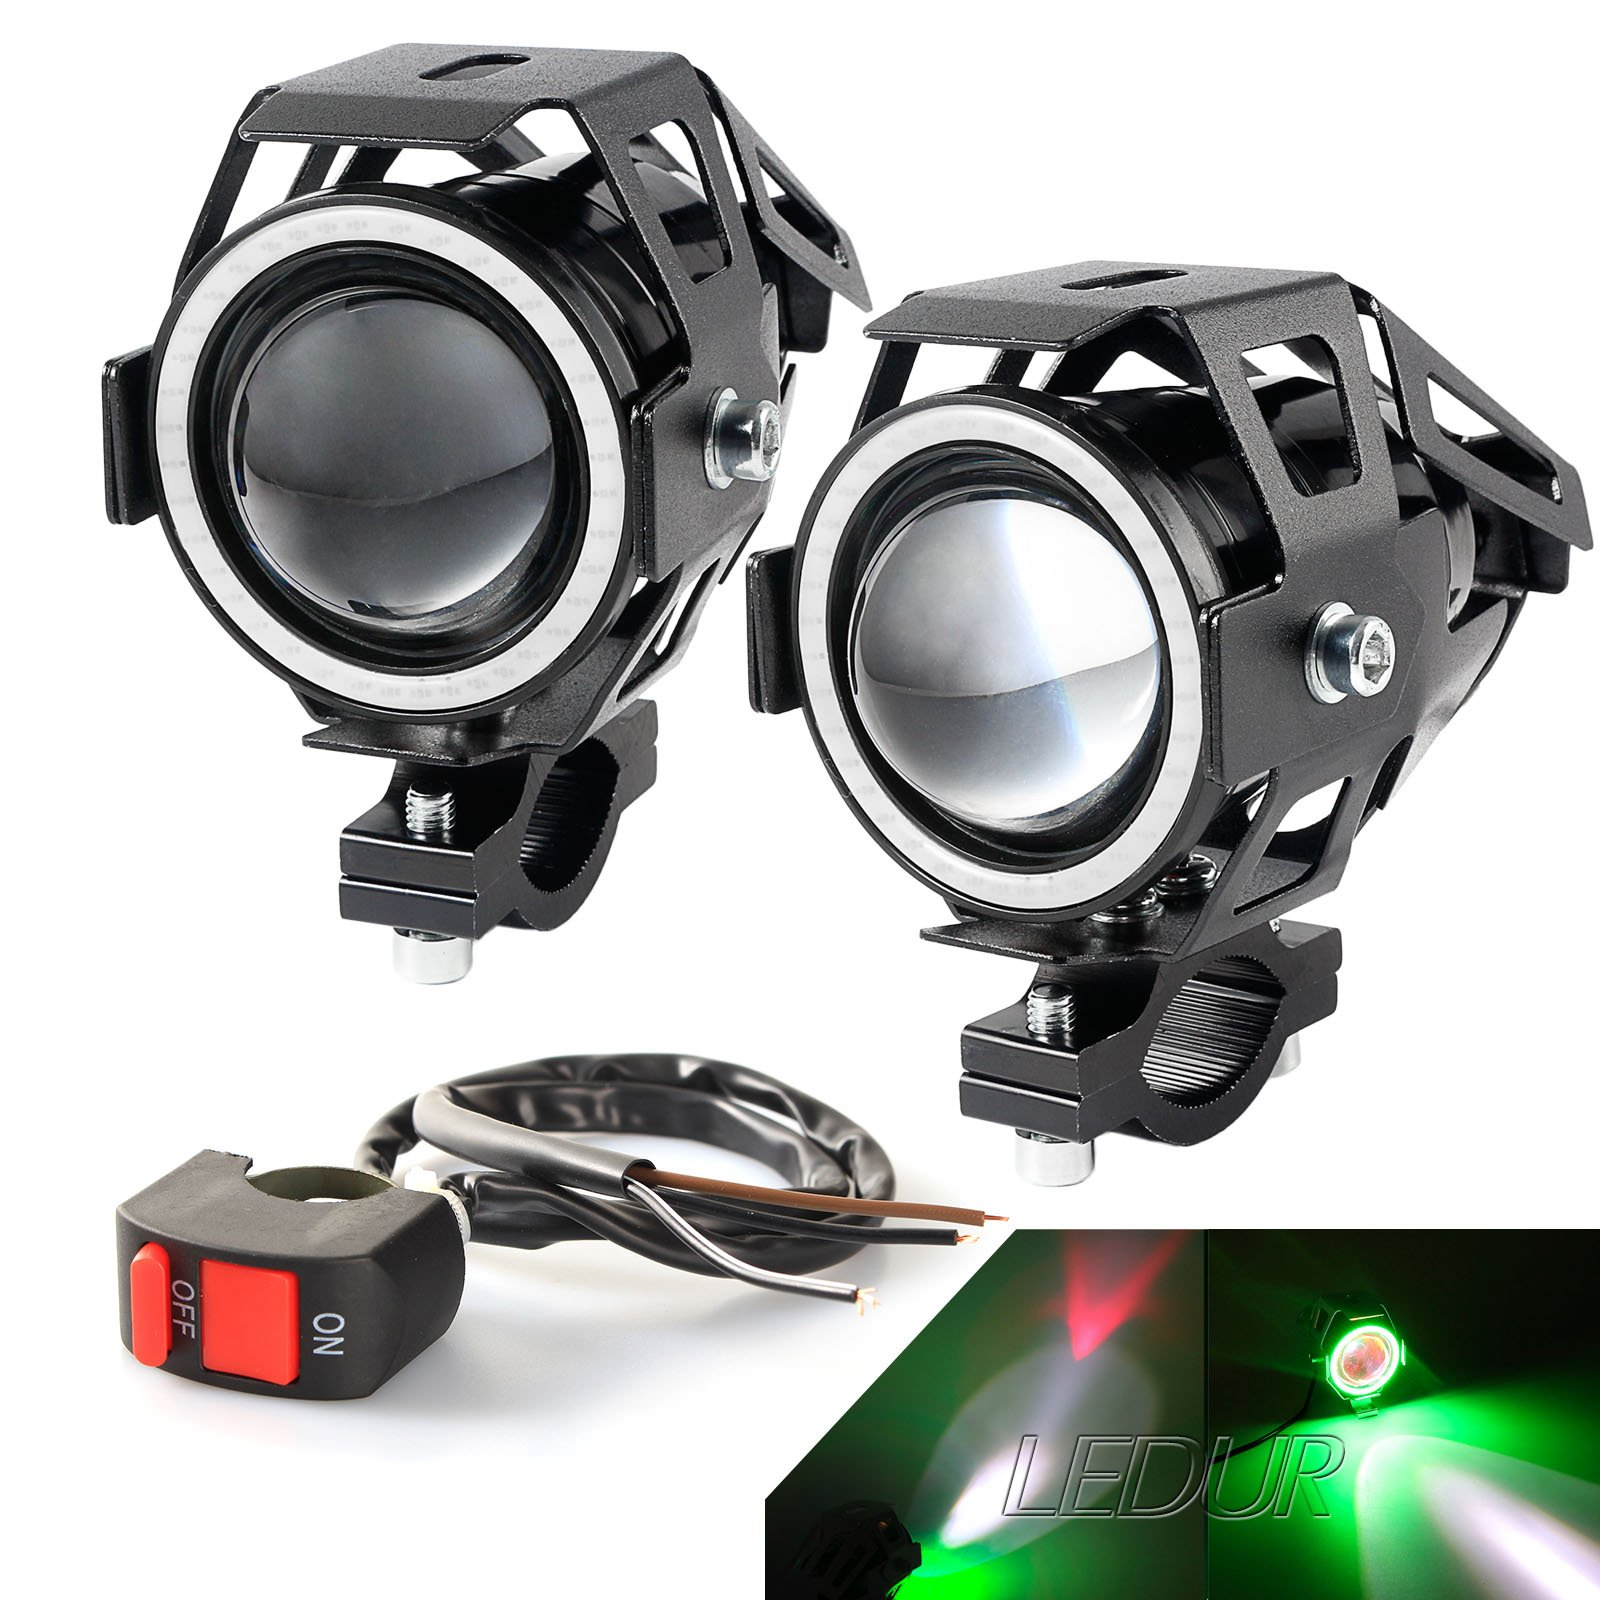 Led Lights For Motorcycle >> Motorcycle Led Lights Headlight Angel Eyes Ring White Light Switch